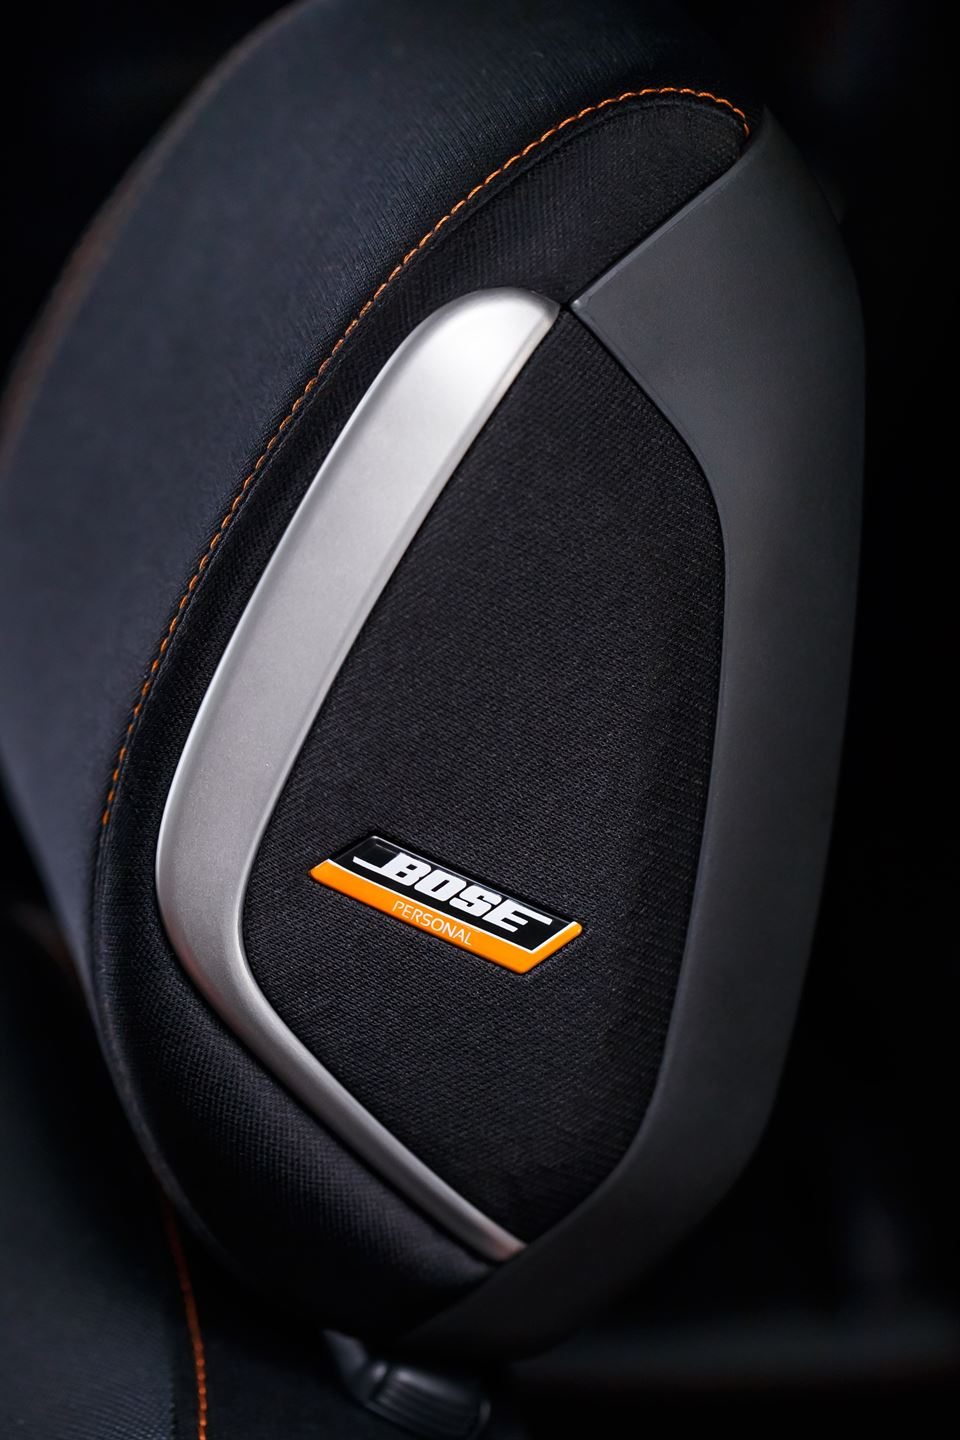 Bose Auto Speakers : speakers, Praise, Sound, Small, Nissan, Micra's, Personal, Audio, System, Award